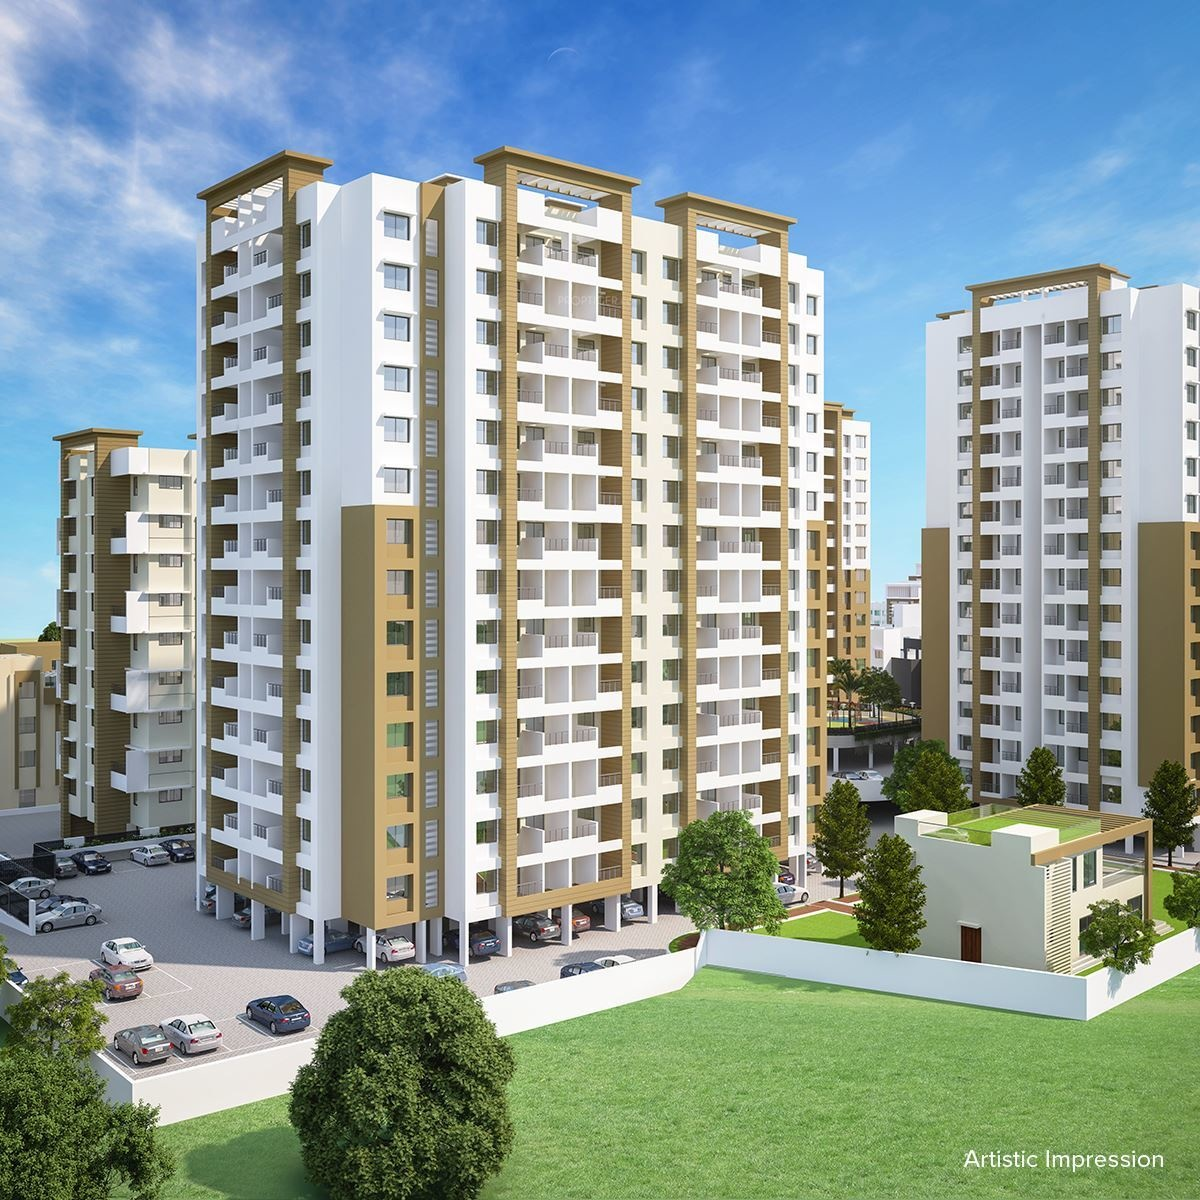 713 Sq Ft 3 BHK 3T Apartment For Sale In Chirag Developers